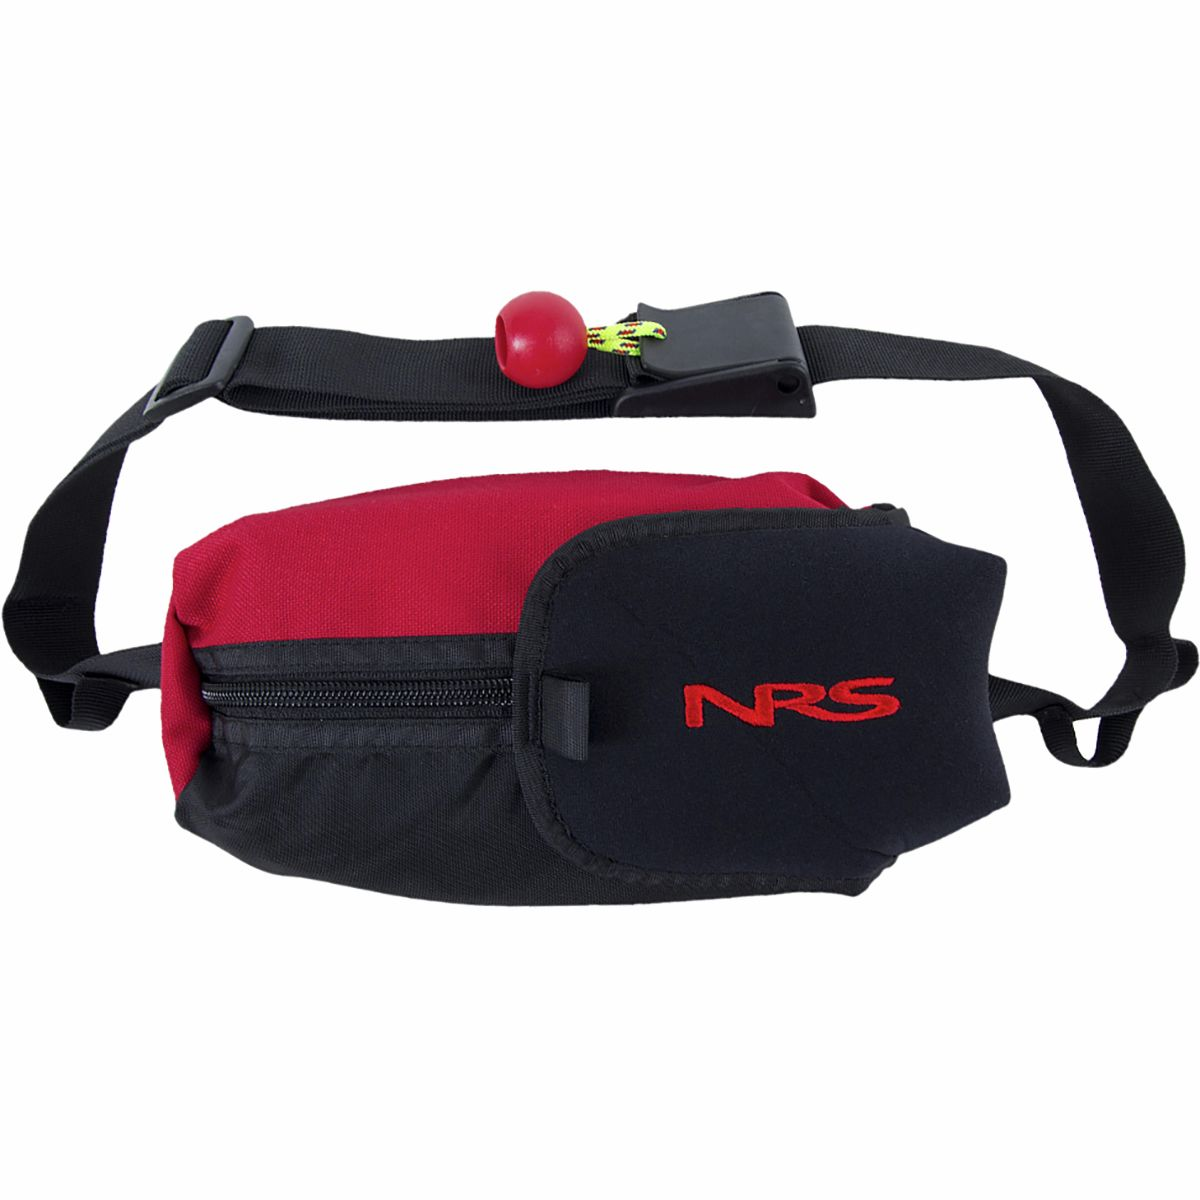 NRS Guardian Waist Throw Bag